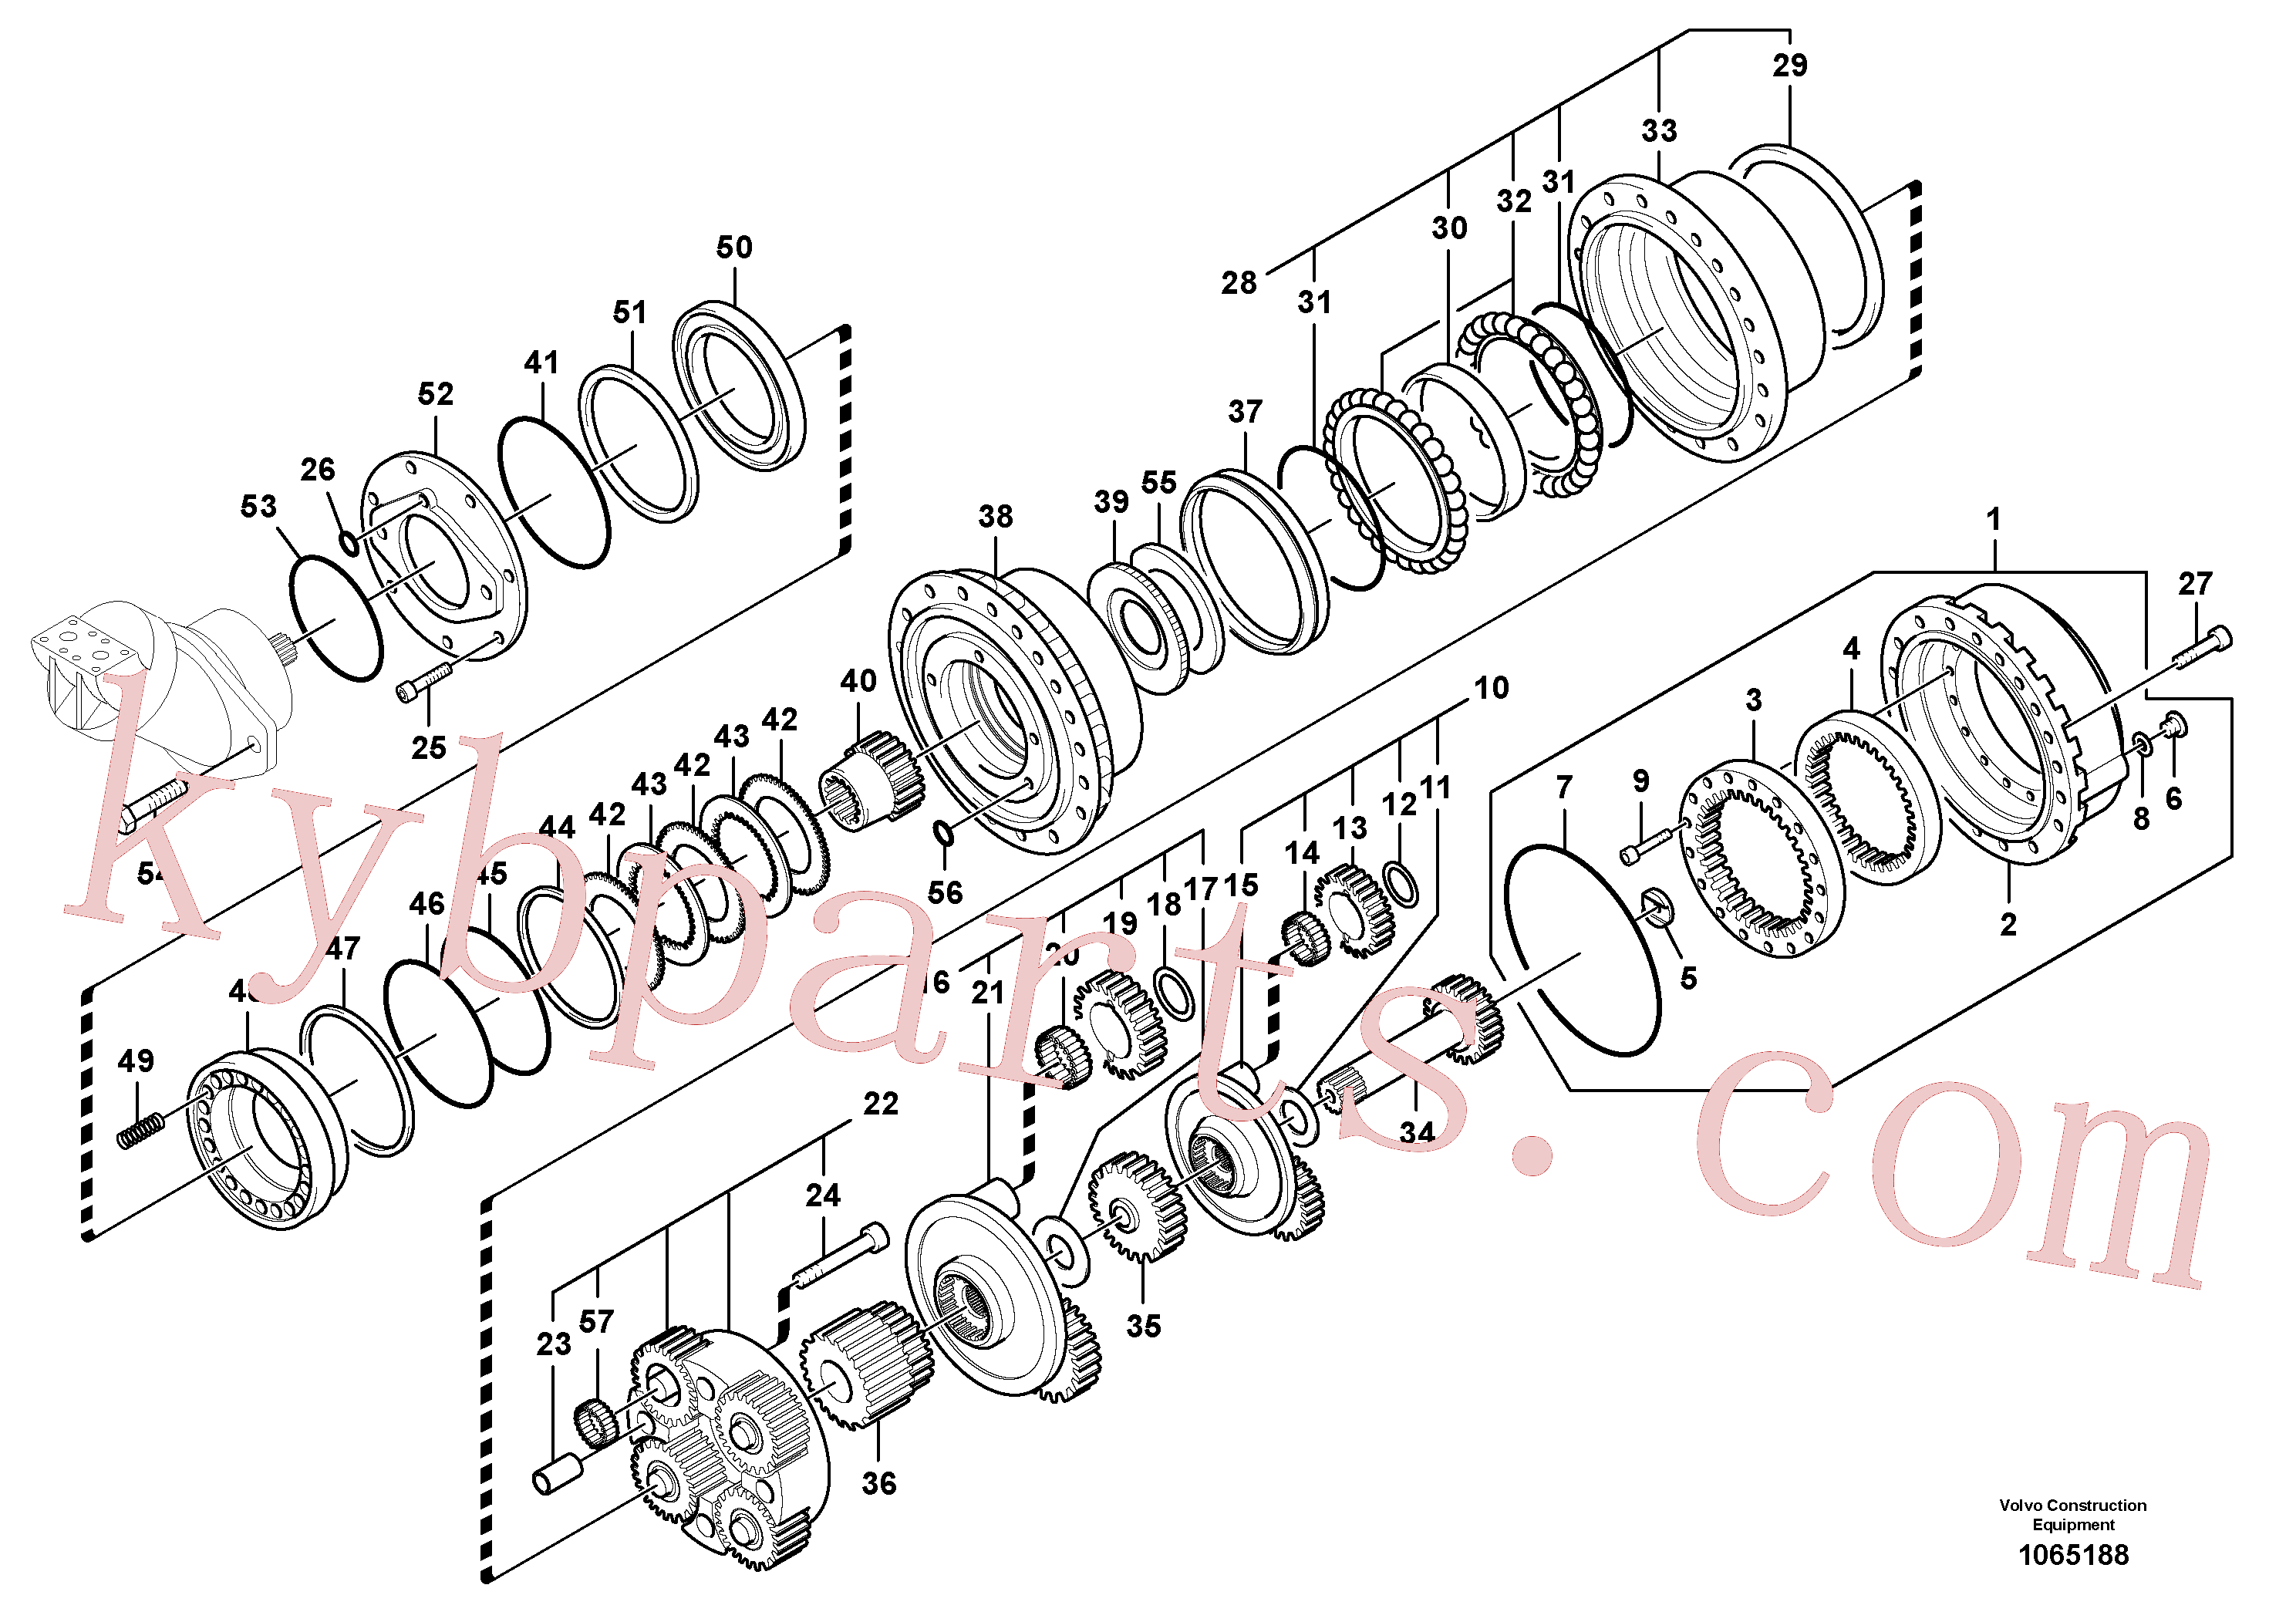 SA8230-22120 for Volvo Travel gearbox(1065188 assembly)